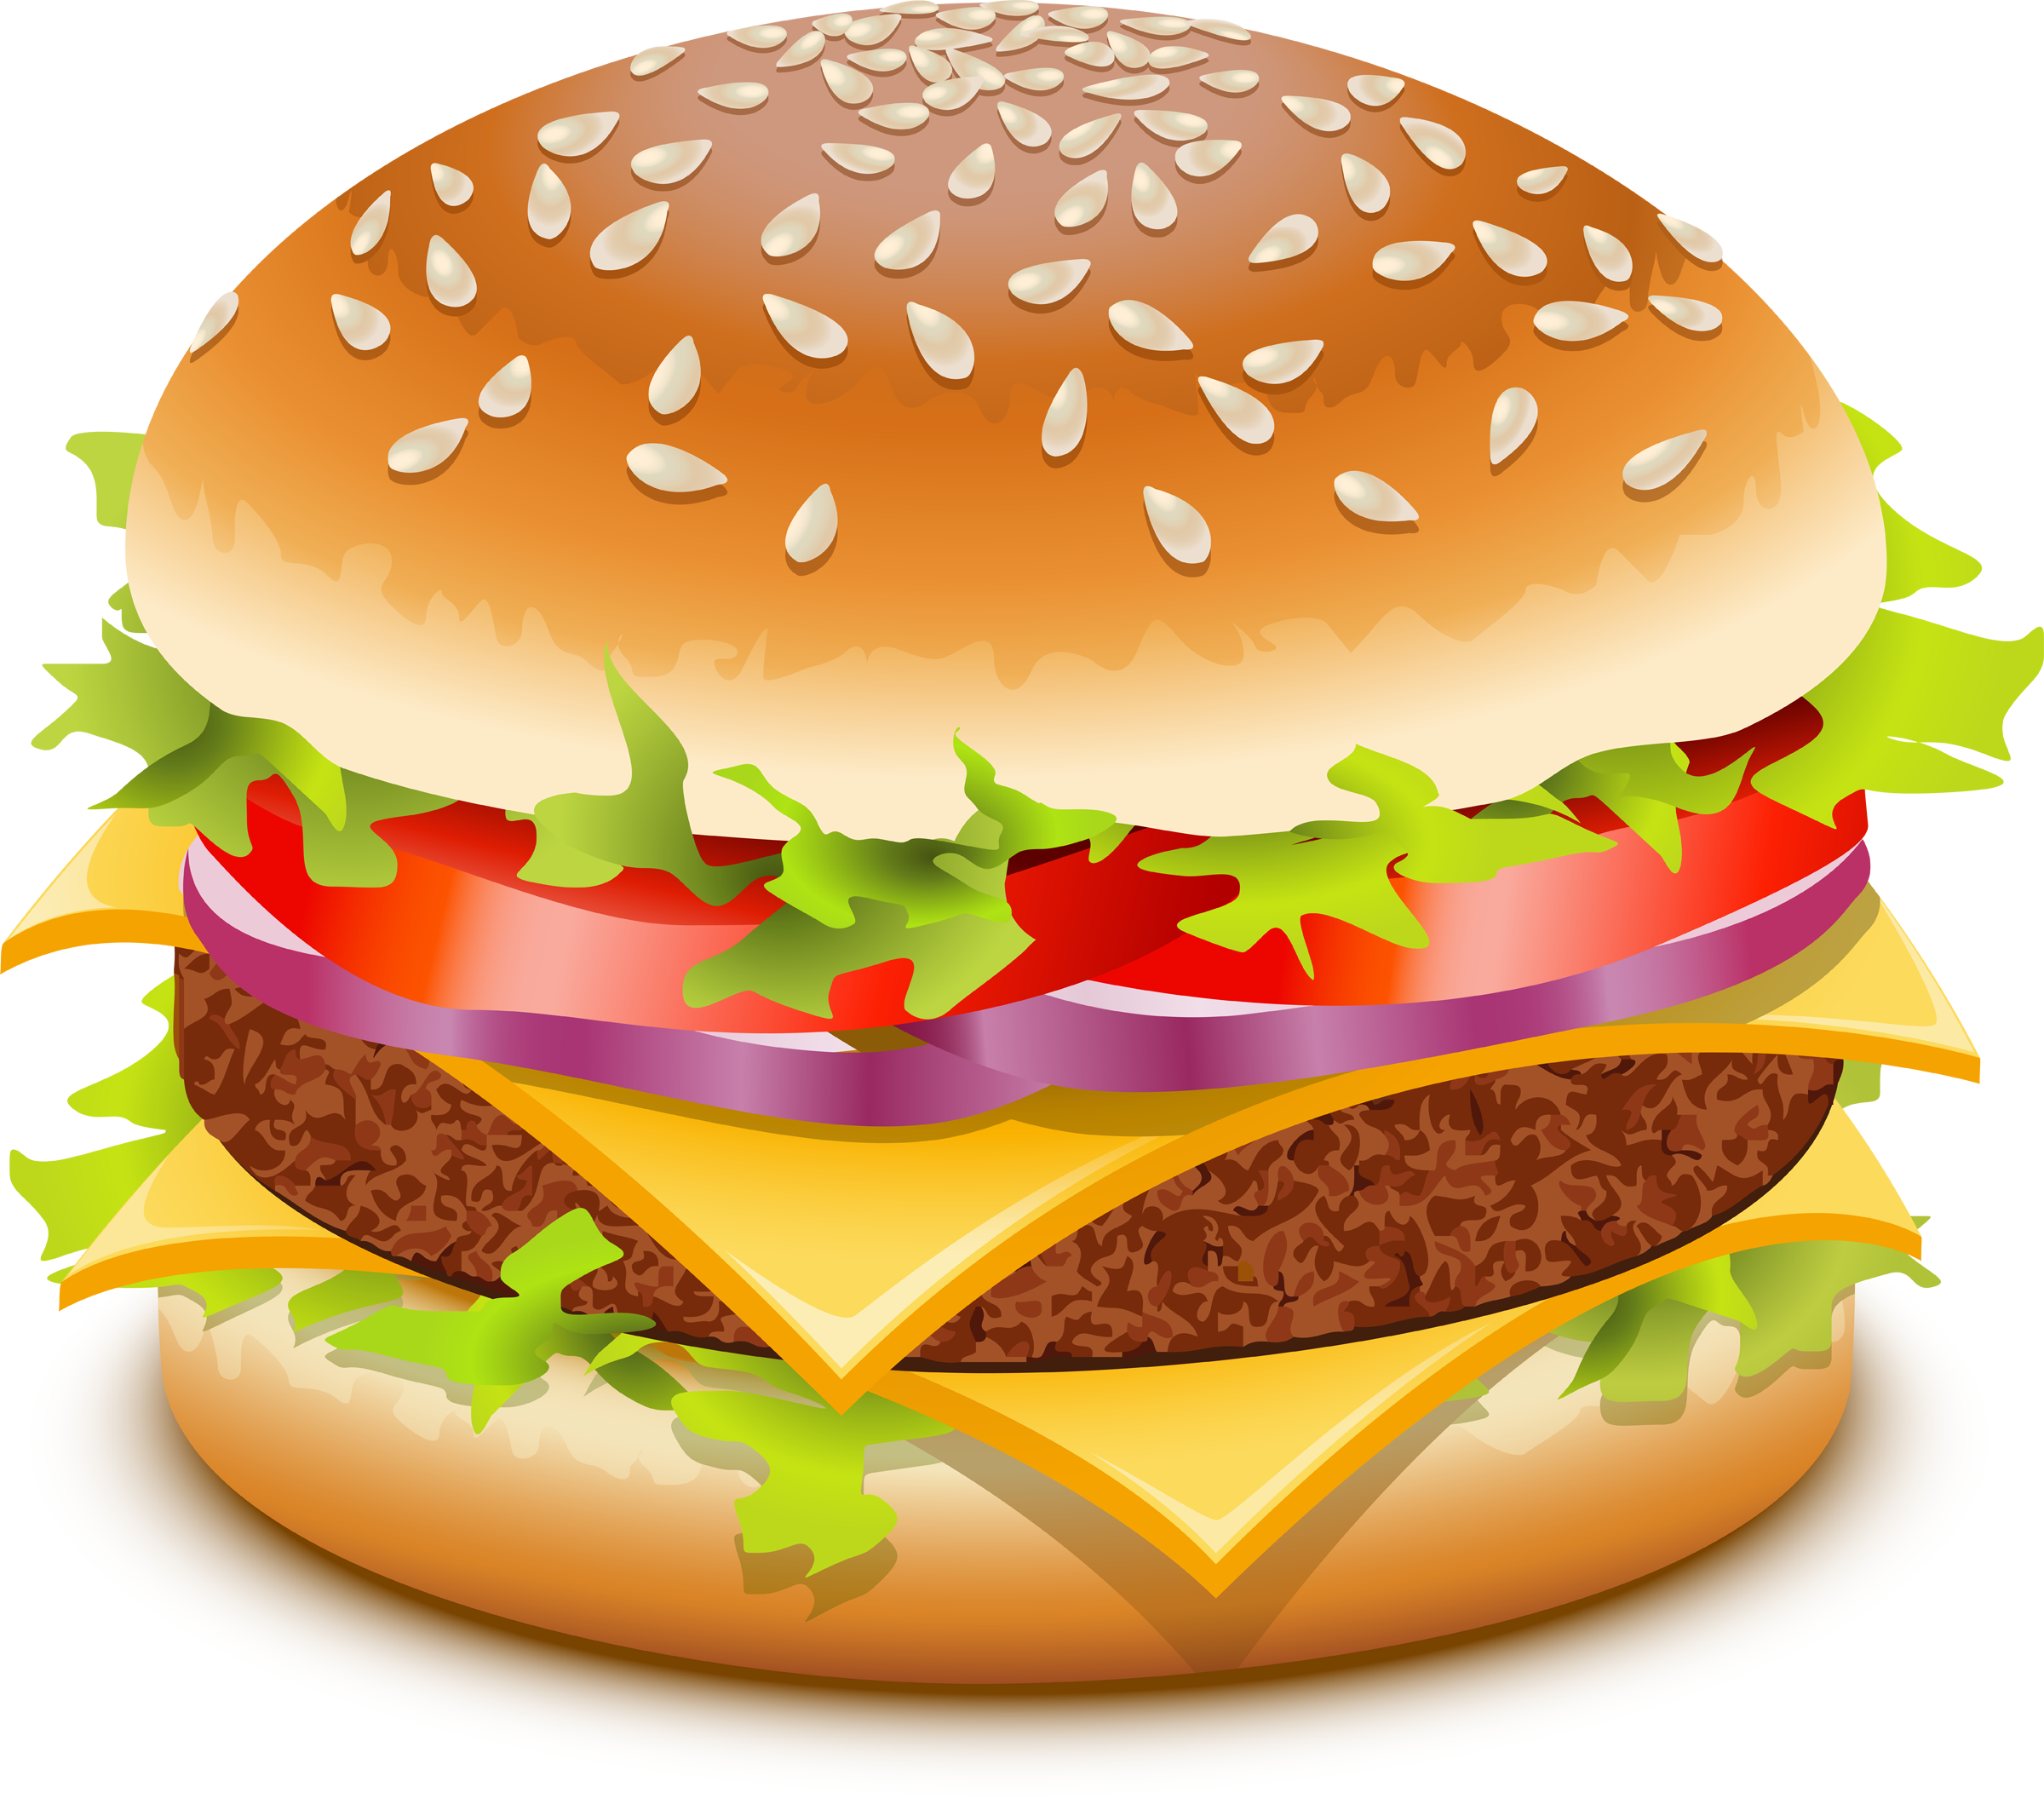 Burger Clipart - Clipart Kid